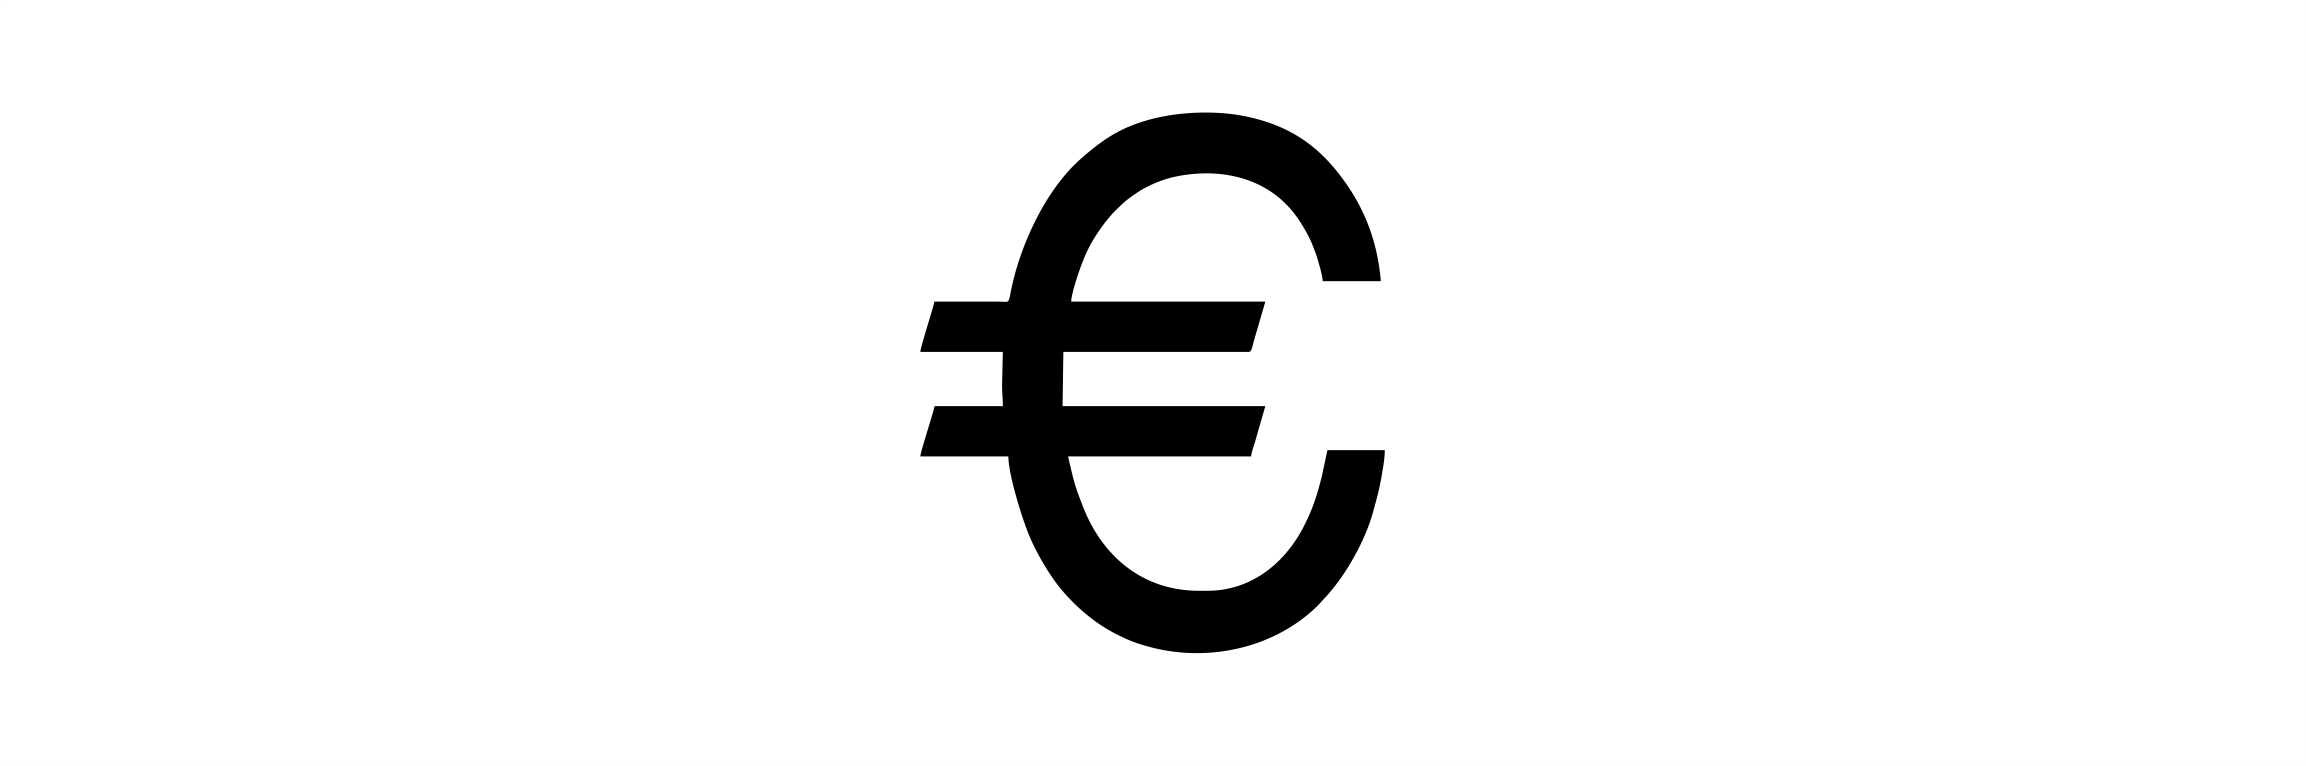 EUR Account Number: